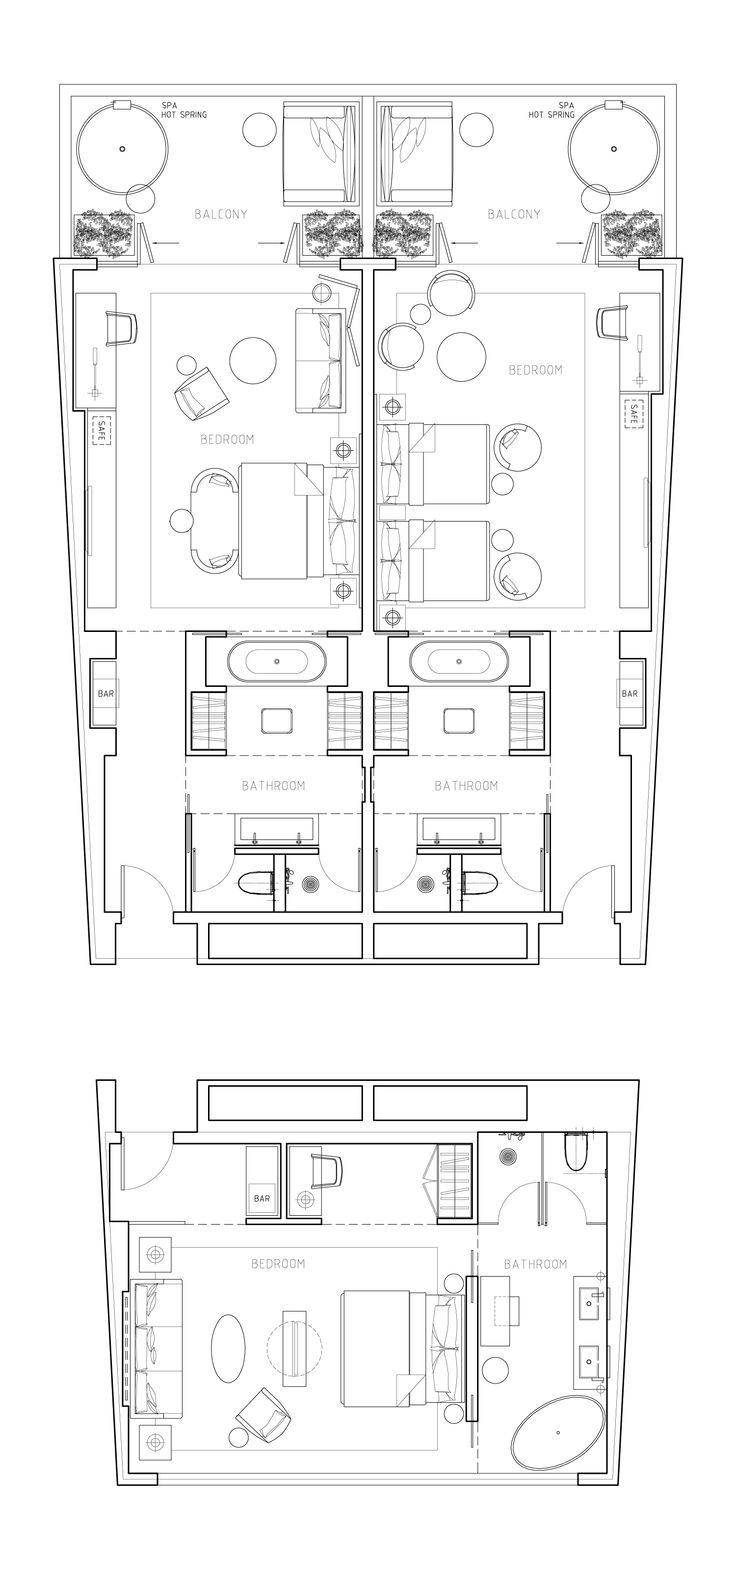 Pin By Artur Gudanec On Hotel Room Layout Pinterest